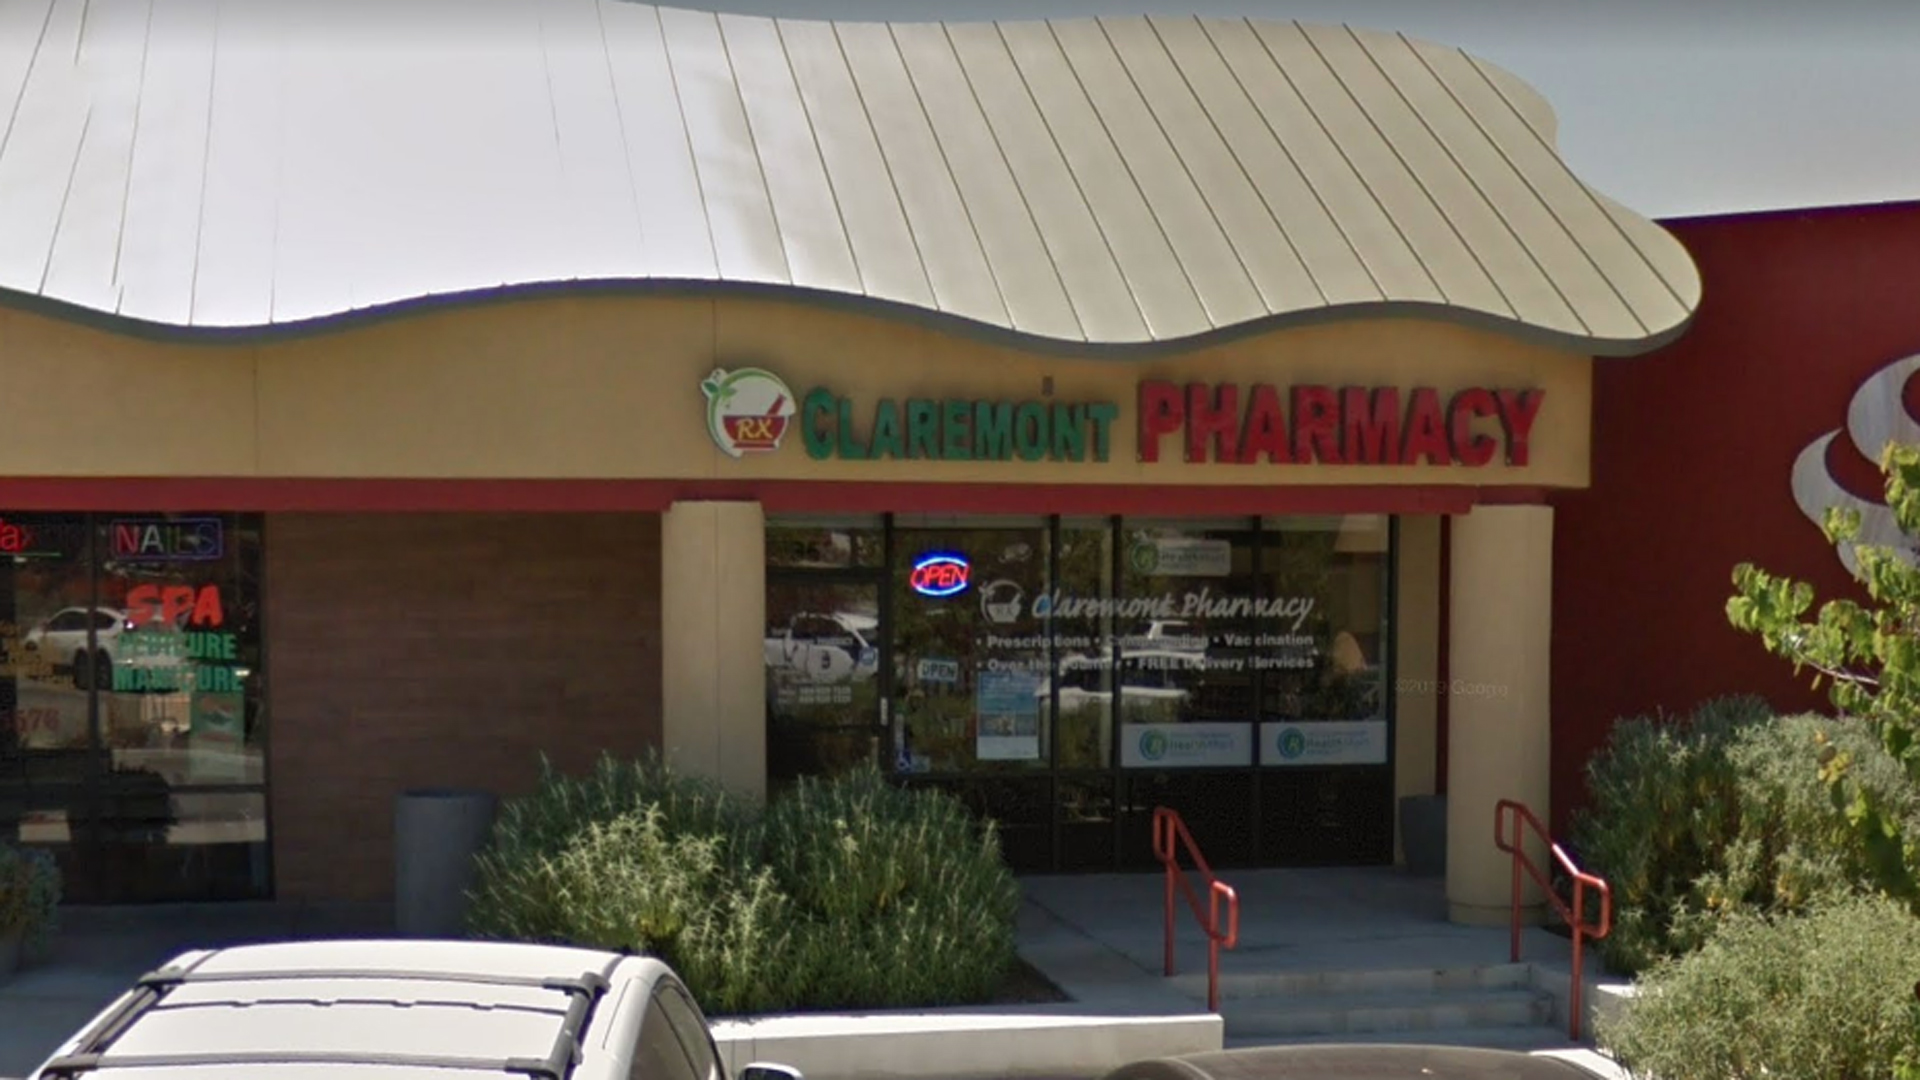 The Claremont Pharmacy, 358 S. Indian Hill Blvd. in Claremont, as pictured in na Google Street View image in May of 2017.